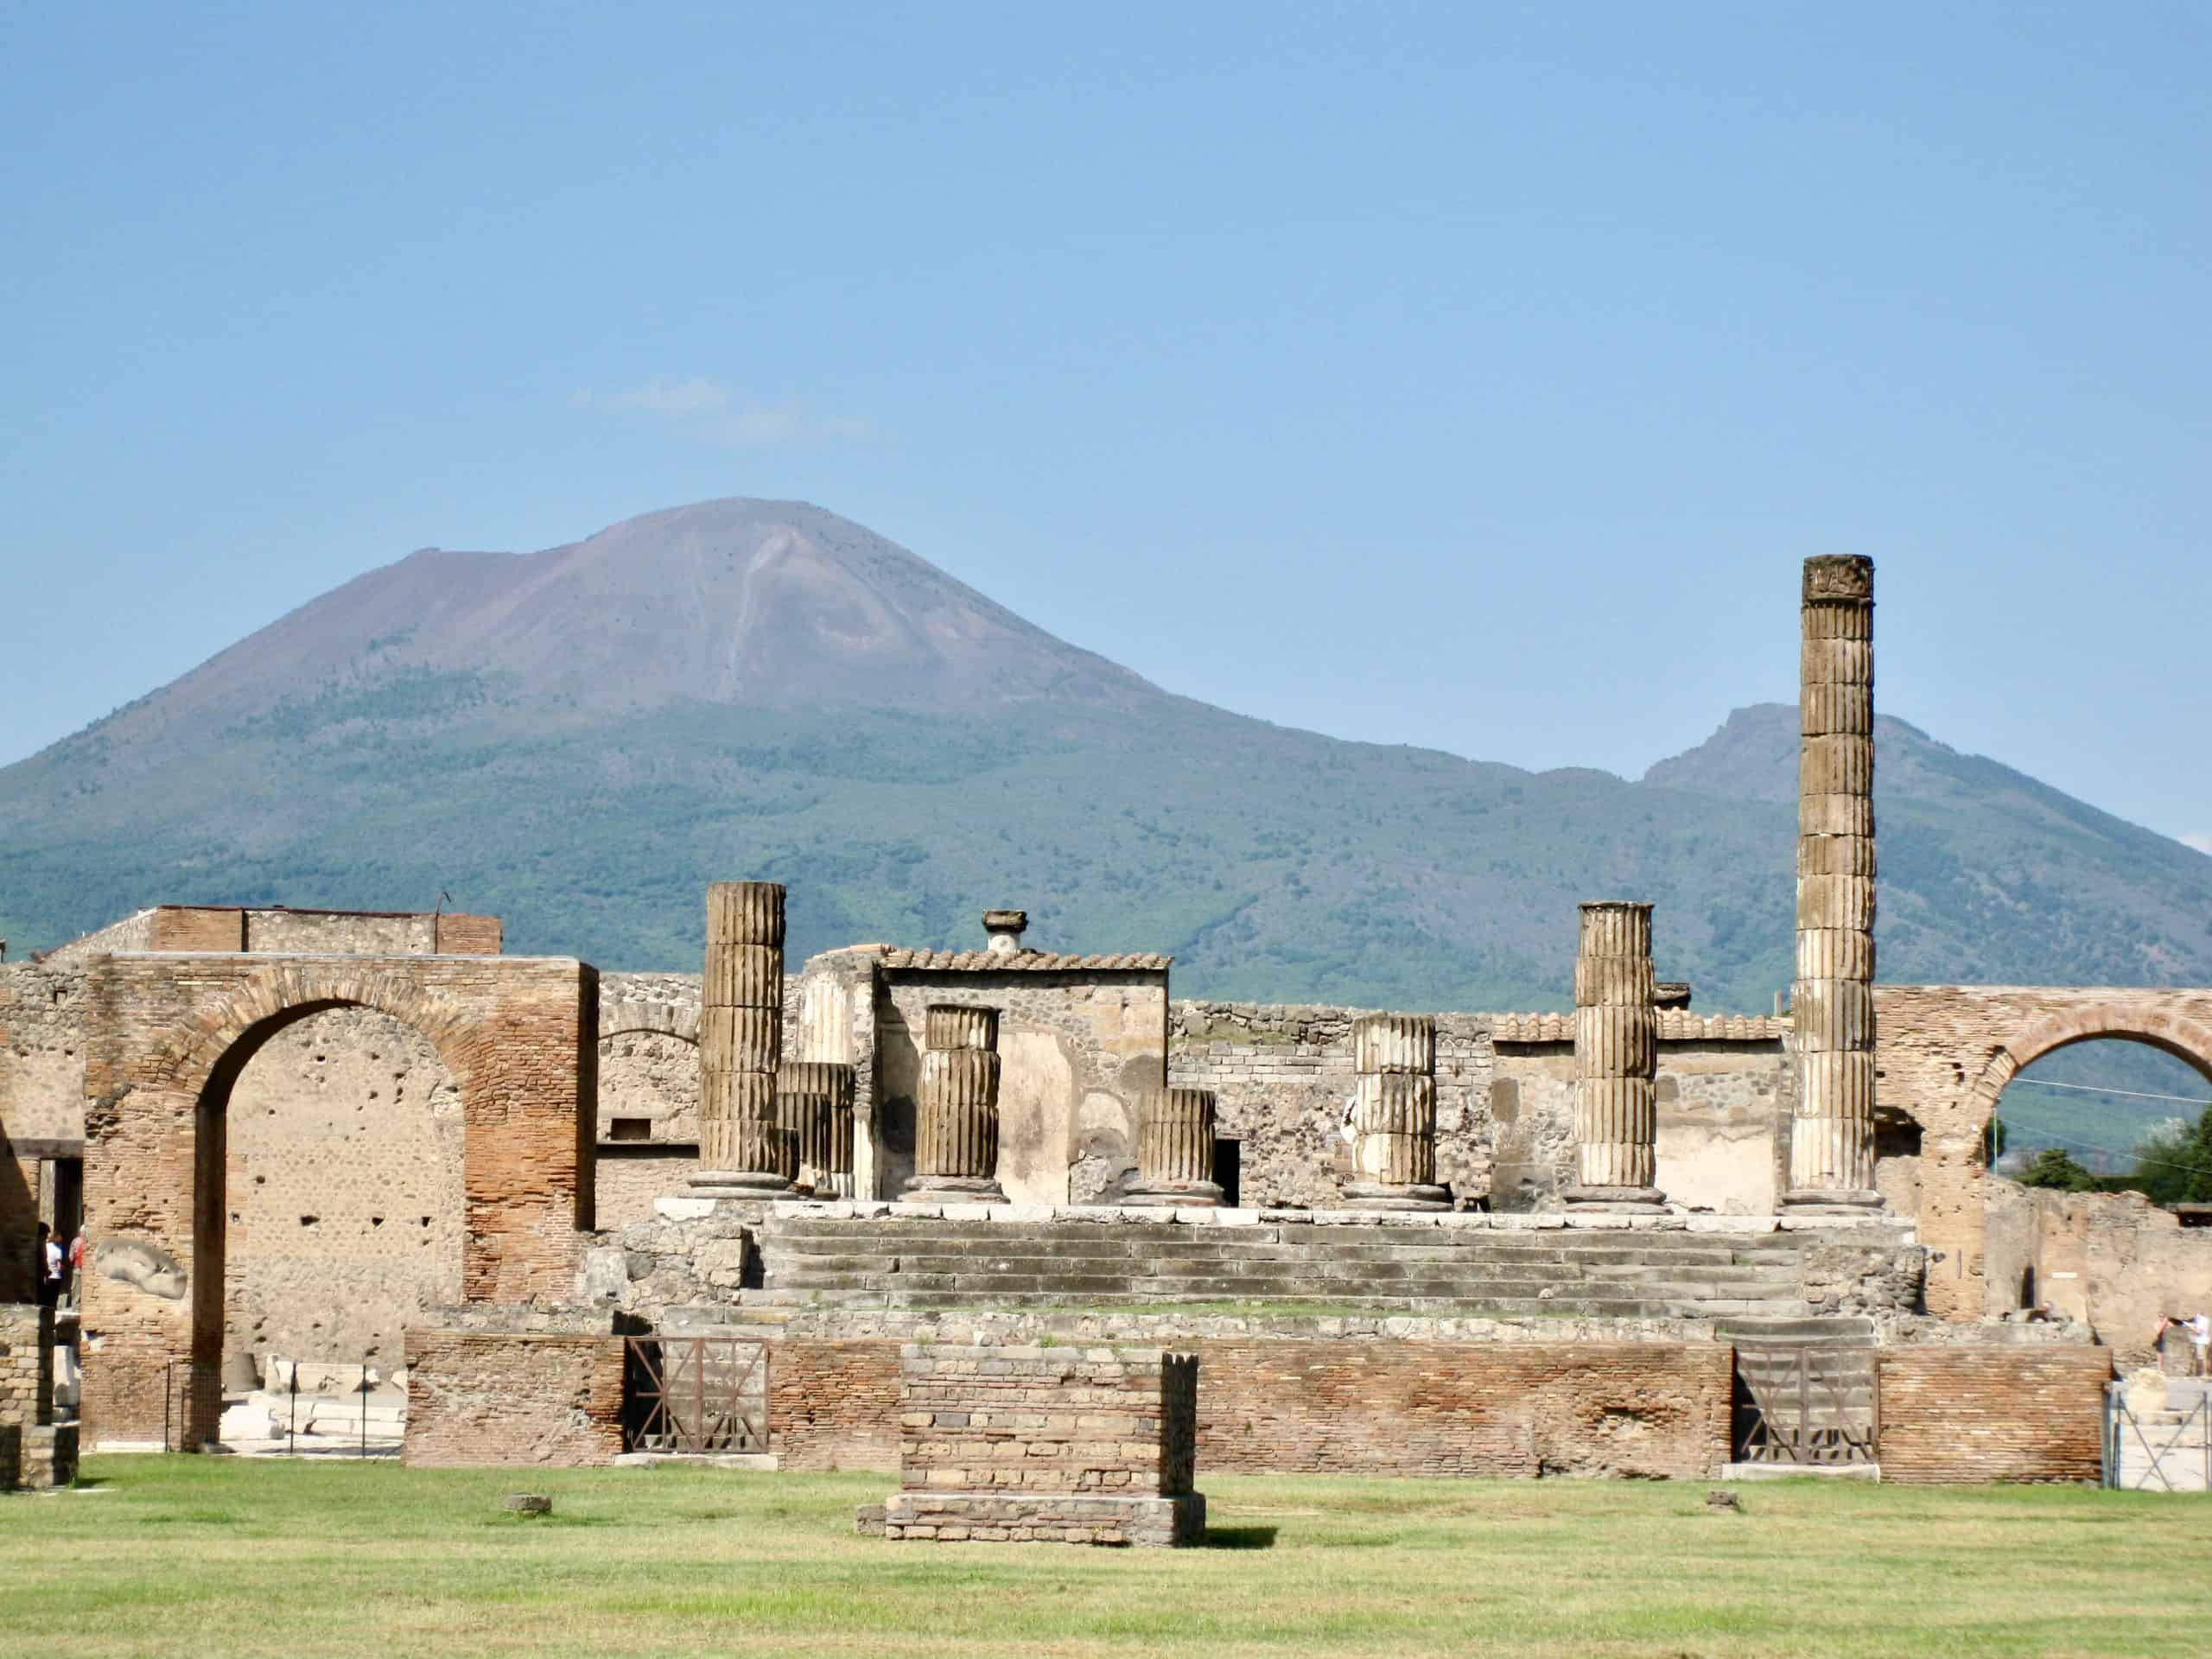 Things to see in Pompeii - the ancient Roman city destroyed by Vesuvius